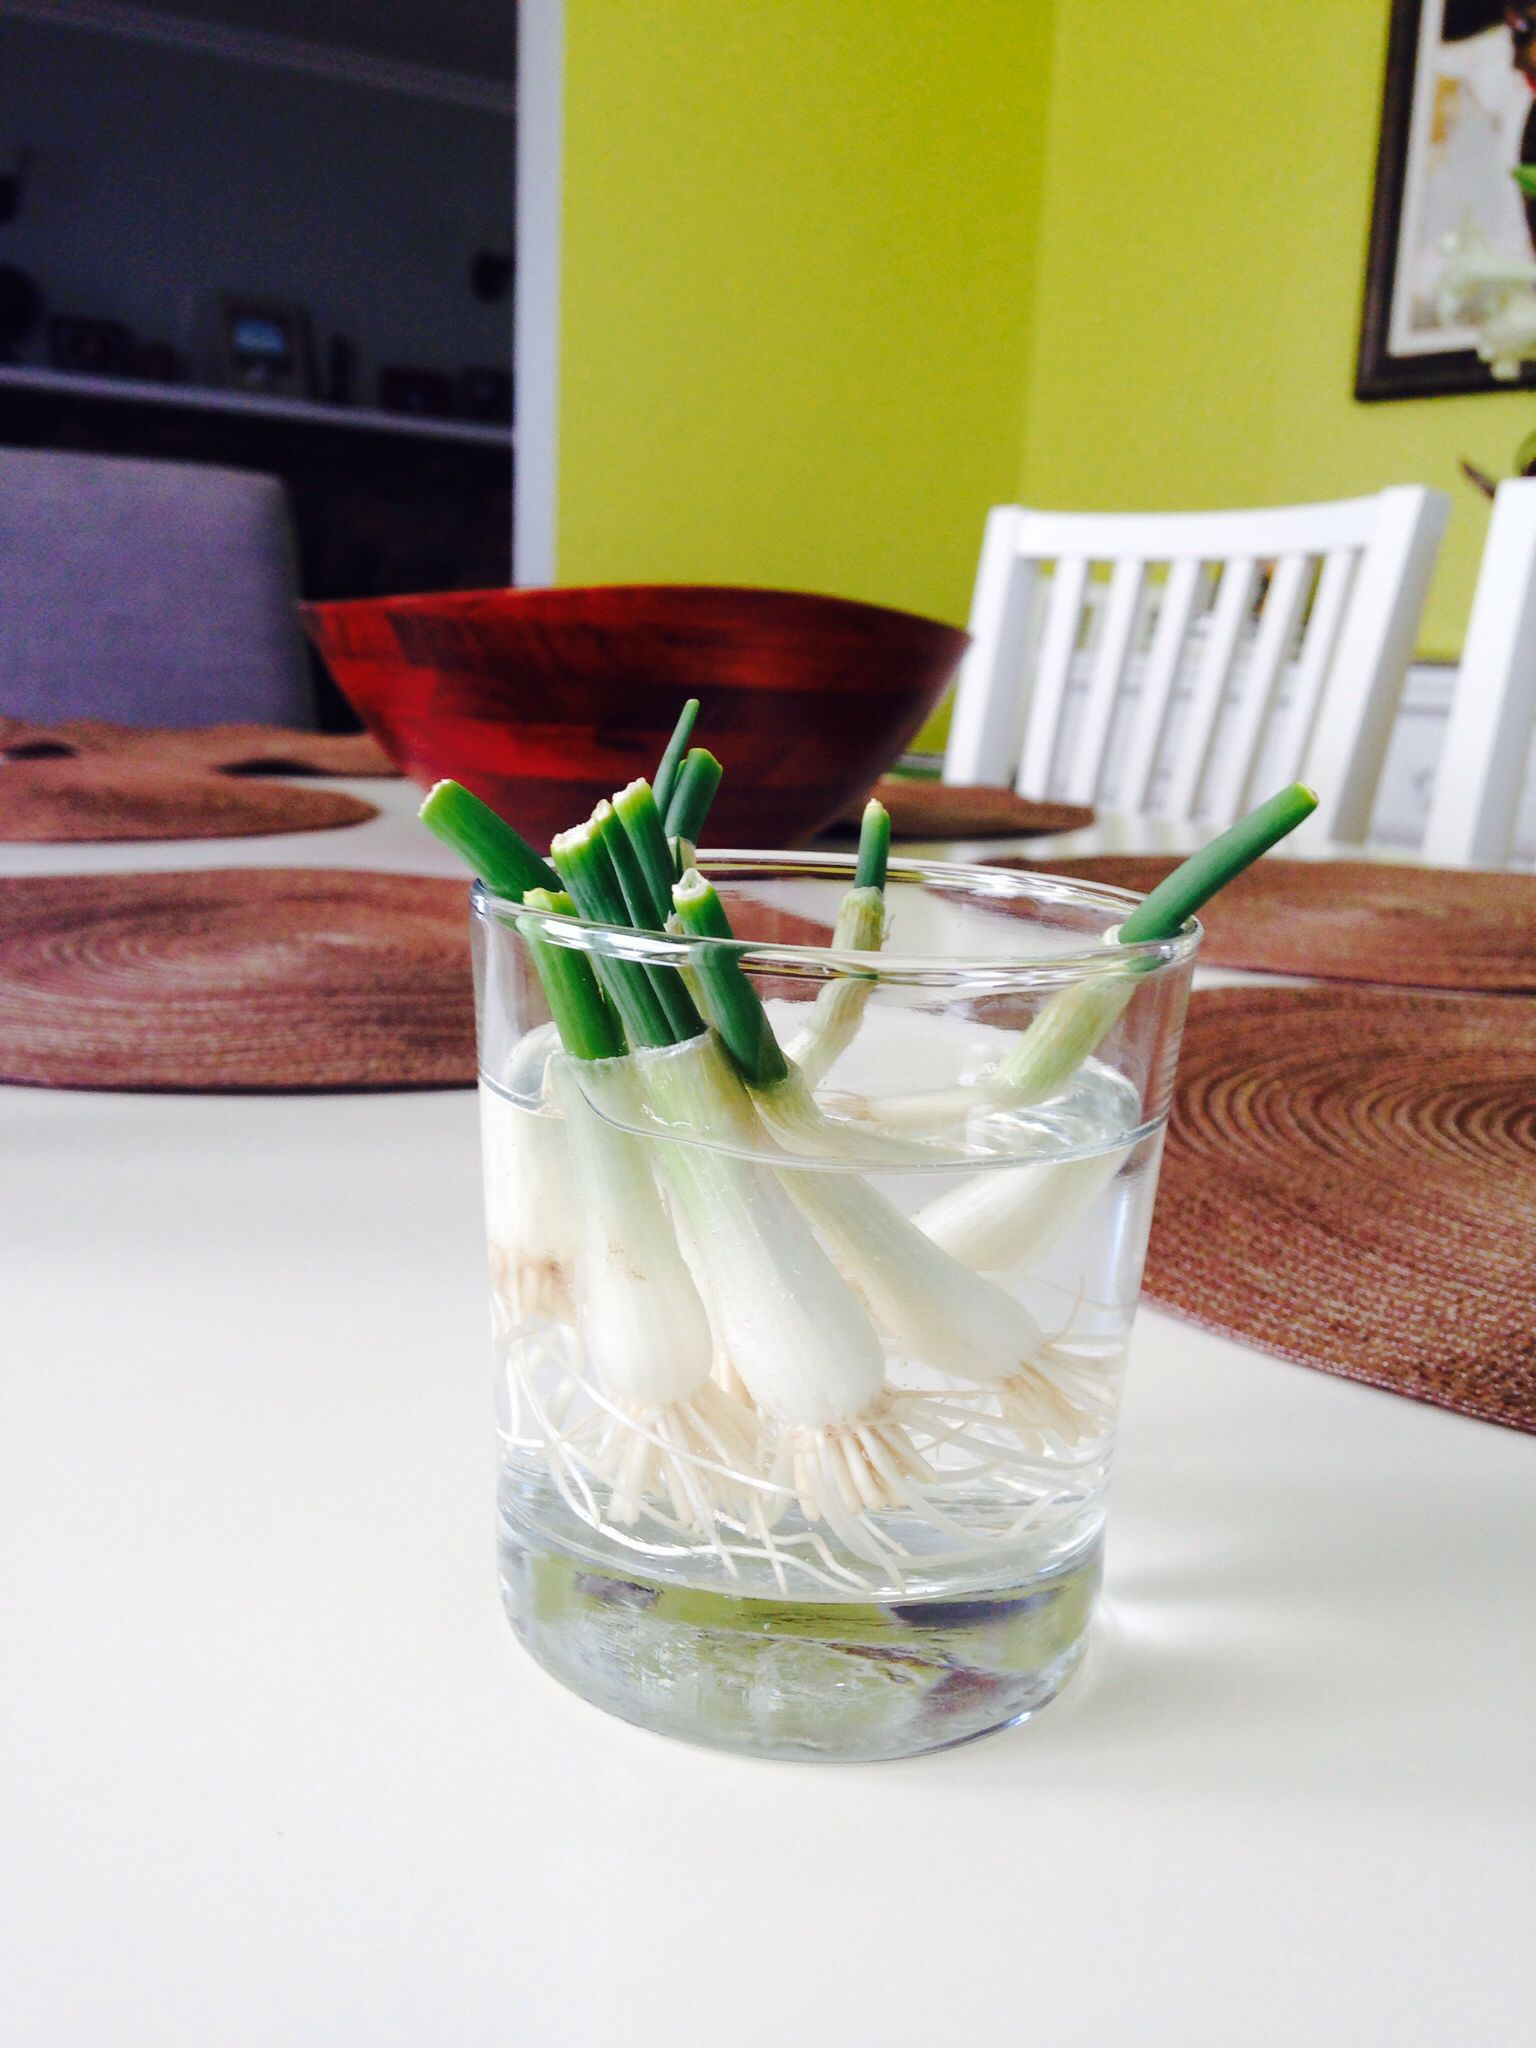 Regrow your old green onions!